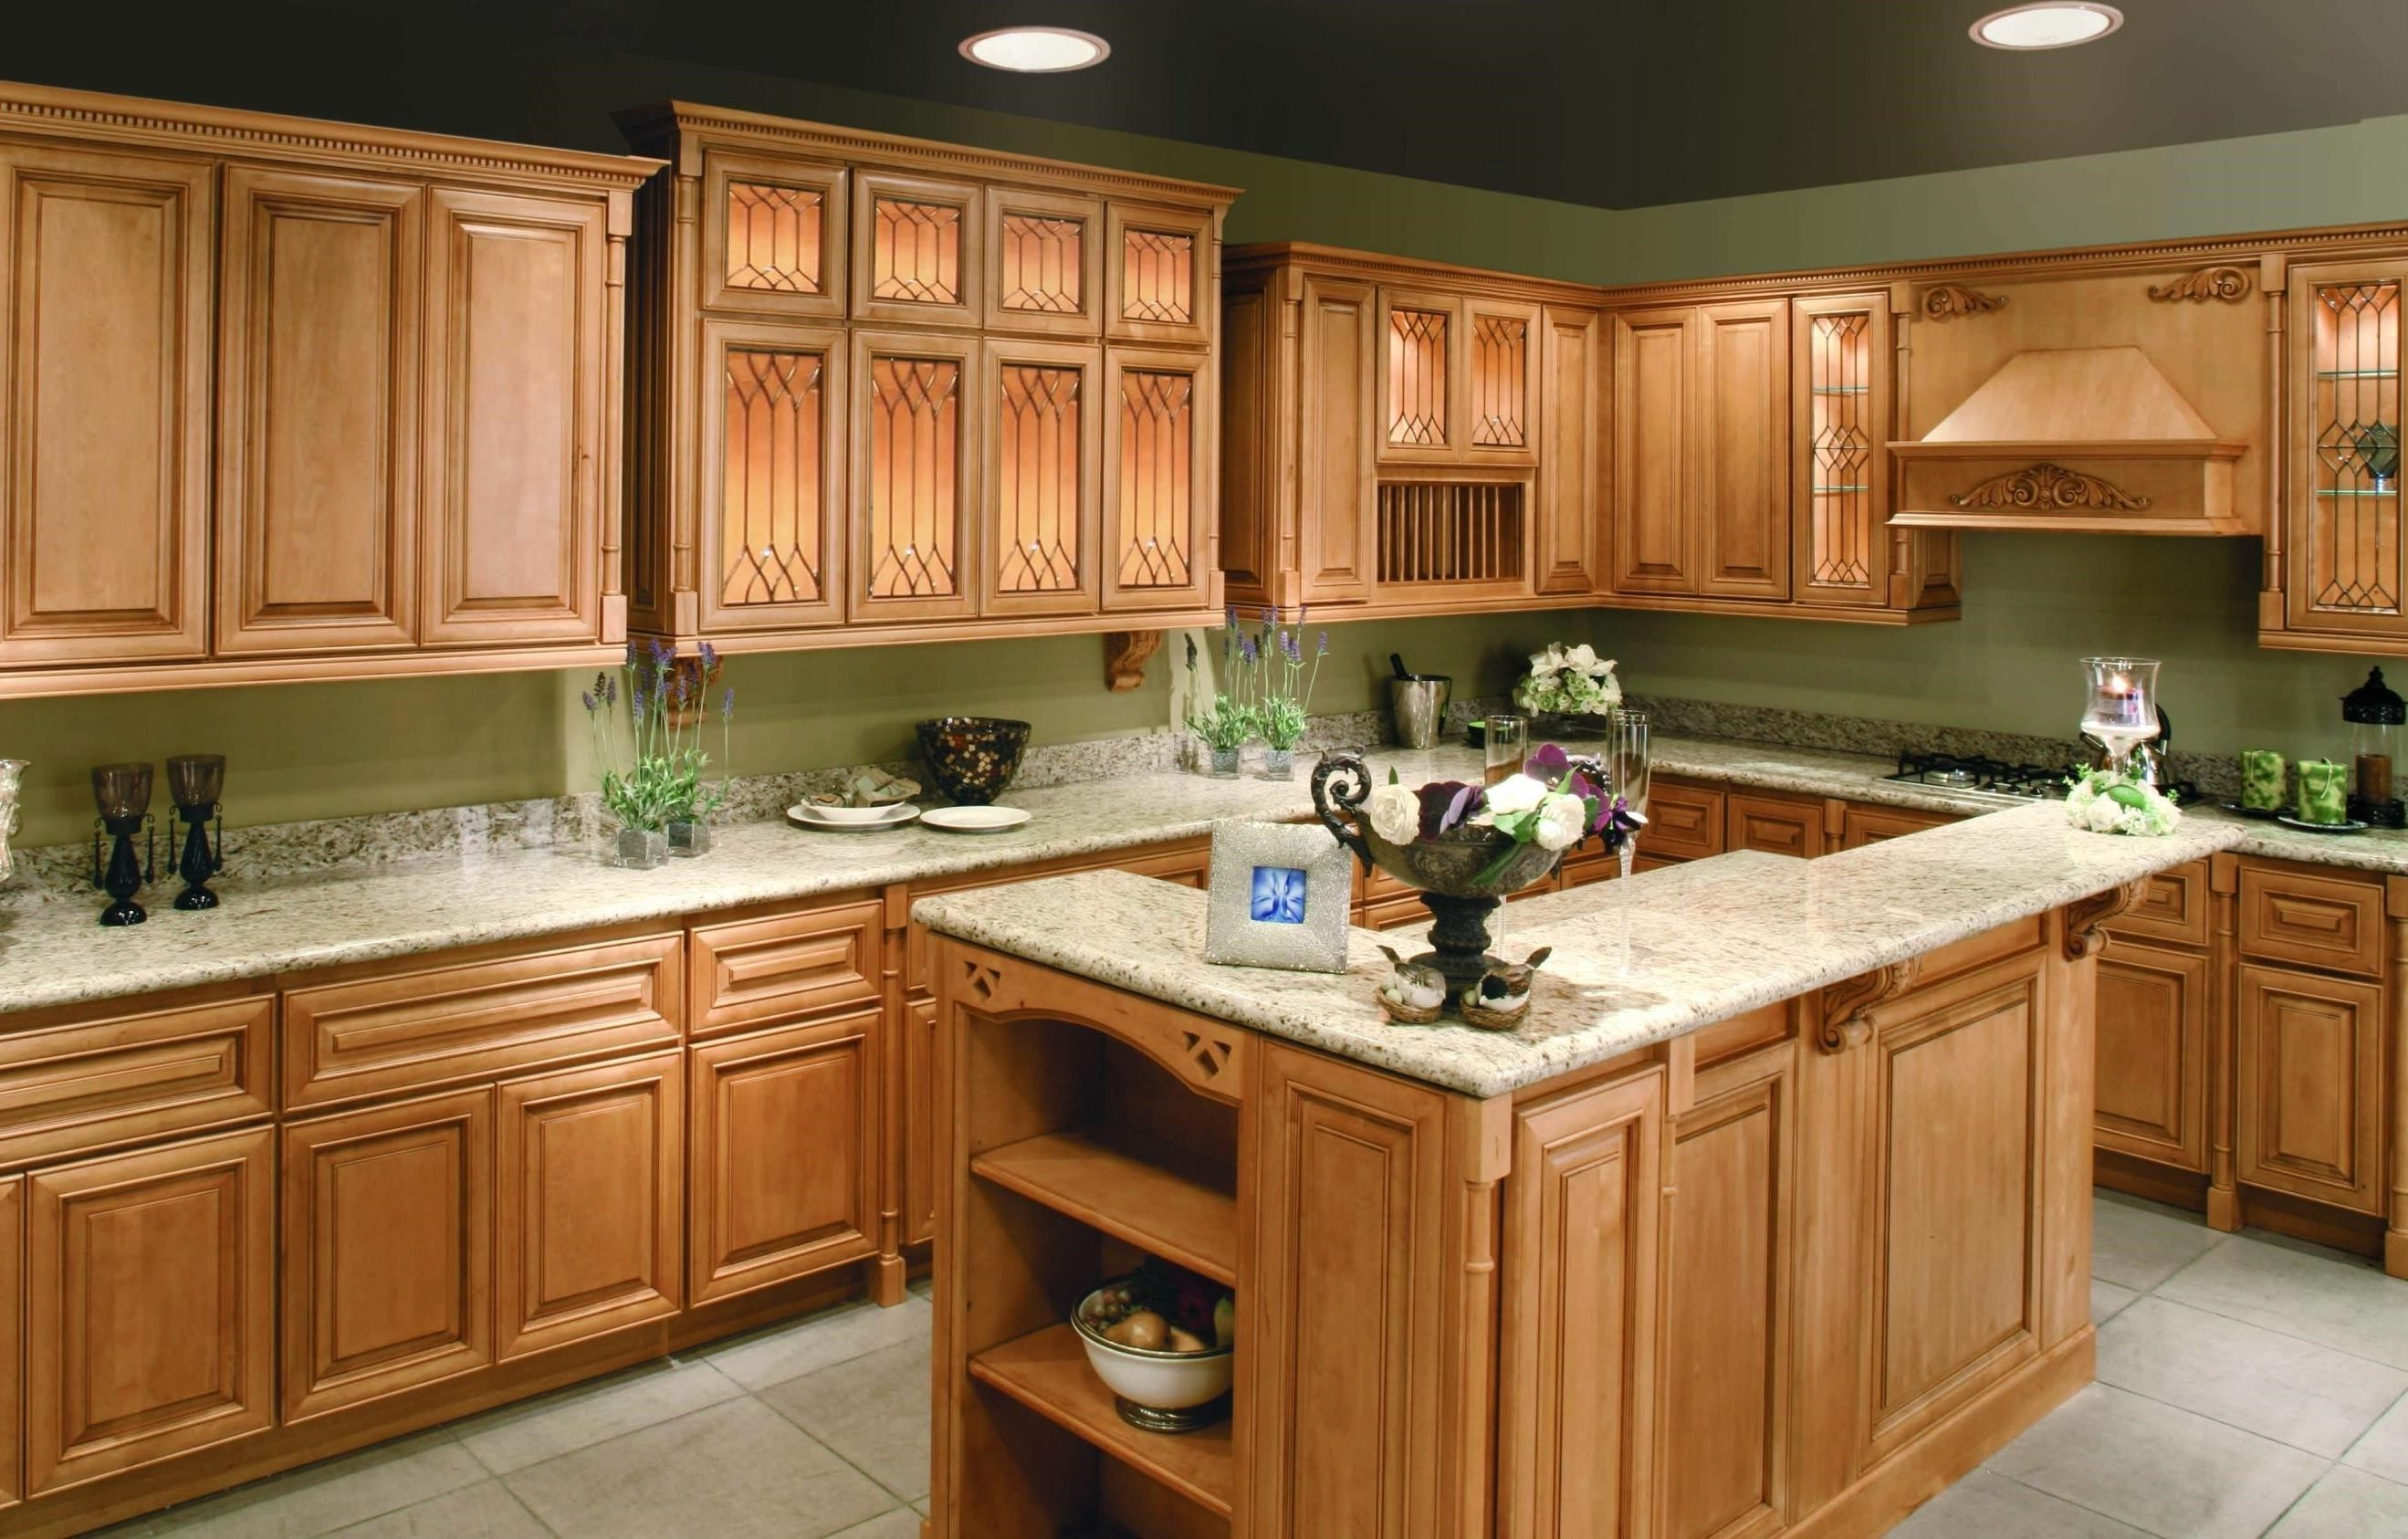 Great Kitchen Cabinets Great Kitchen Paint Colors With Oak Cabinets And Stainless